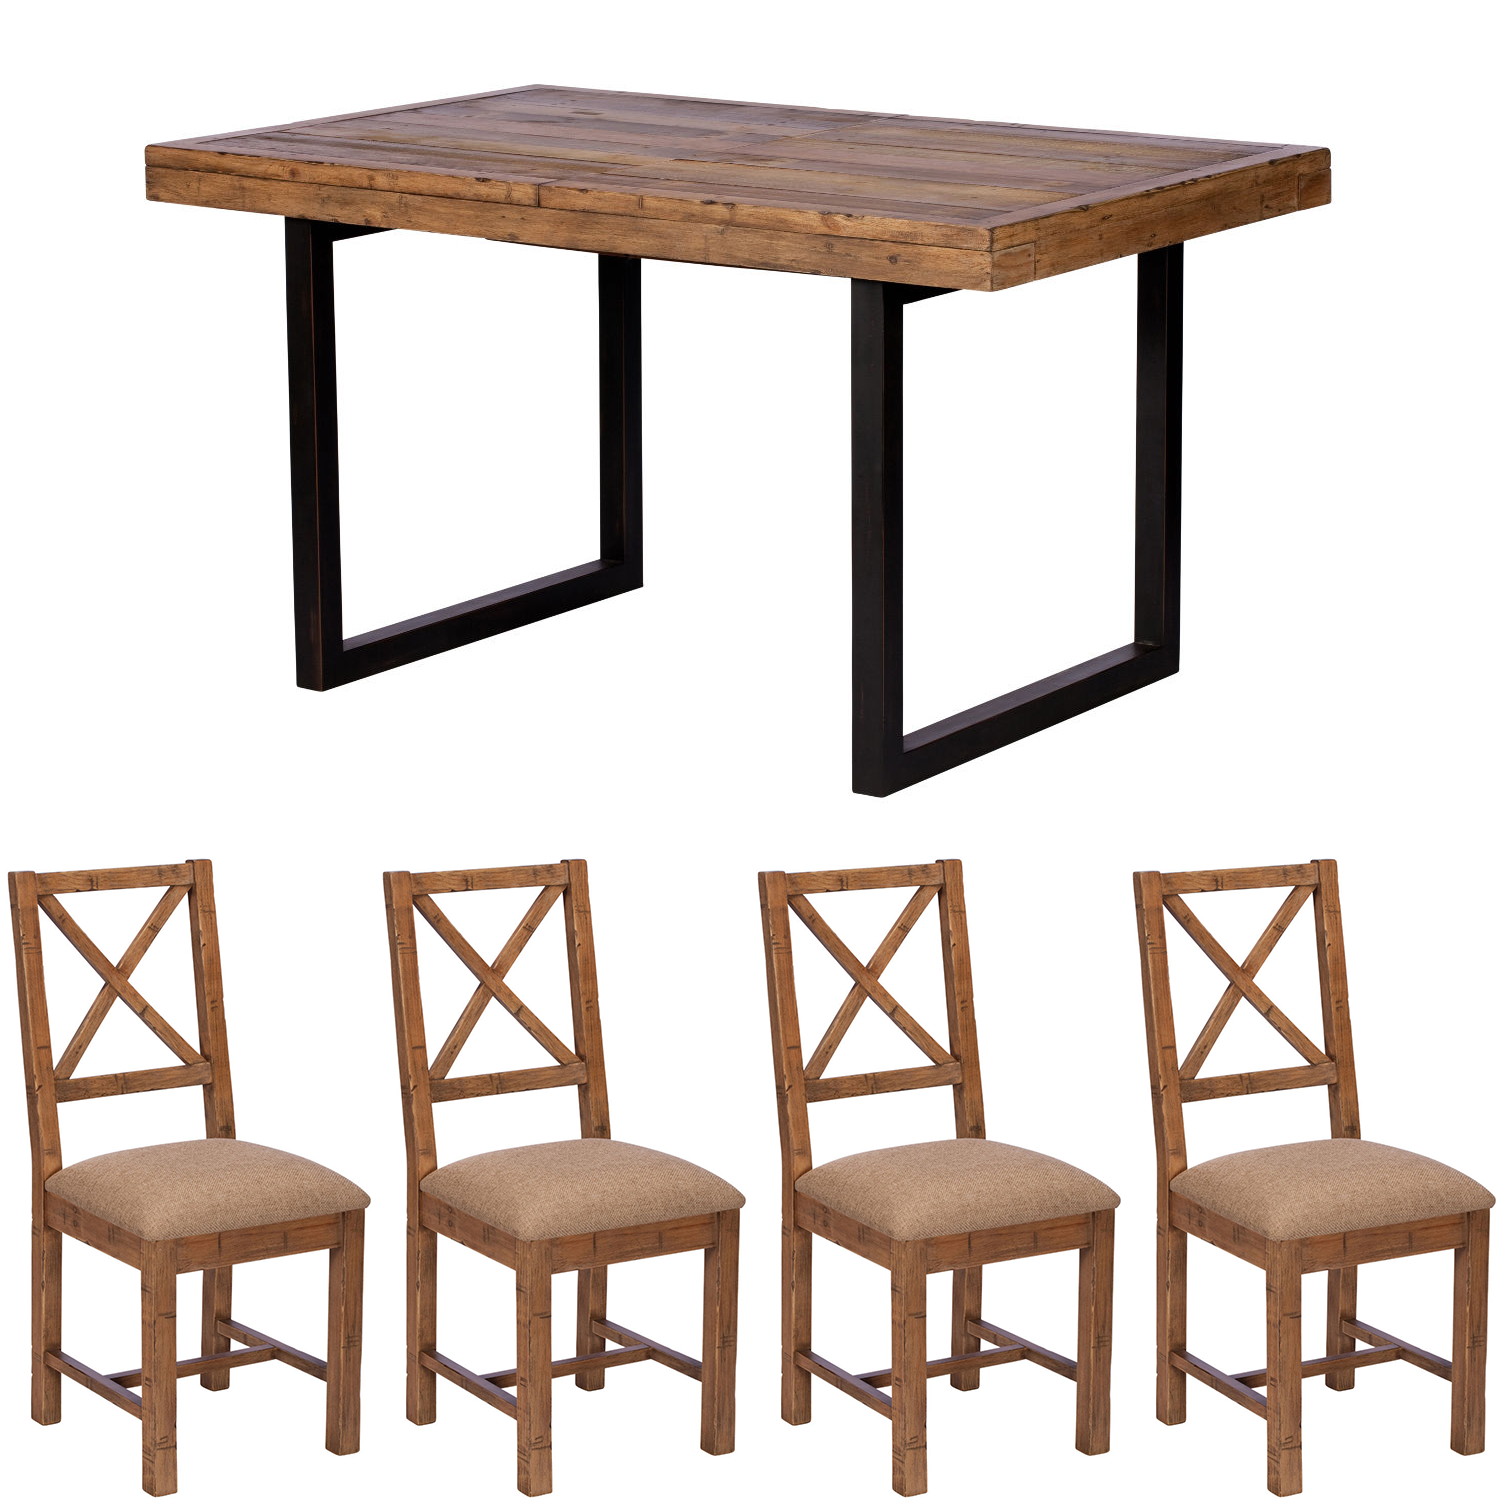 Lincoln 140cm Table & x4 Upholstered Chairs Dining Set